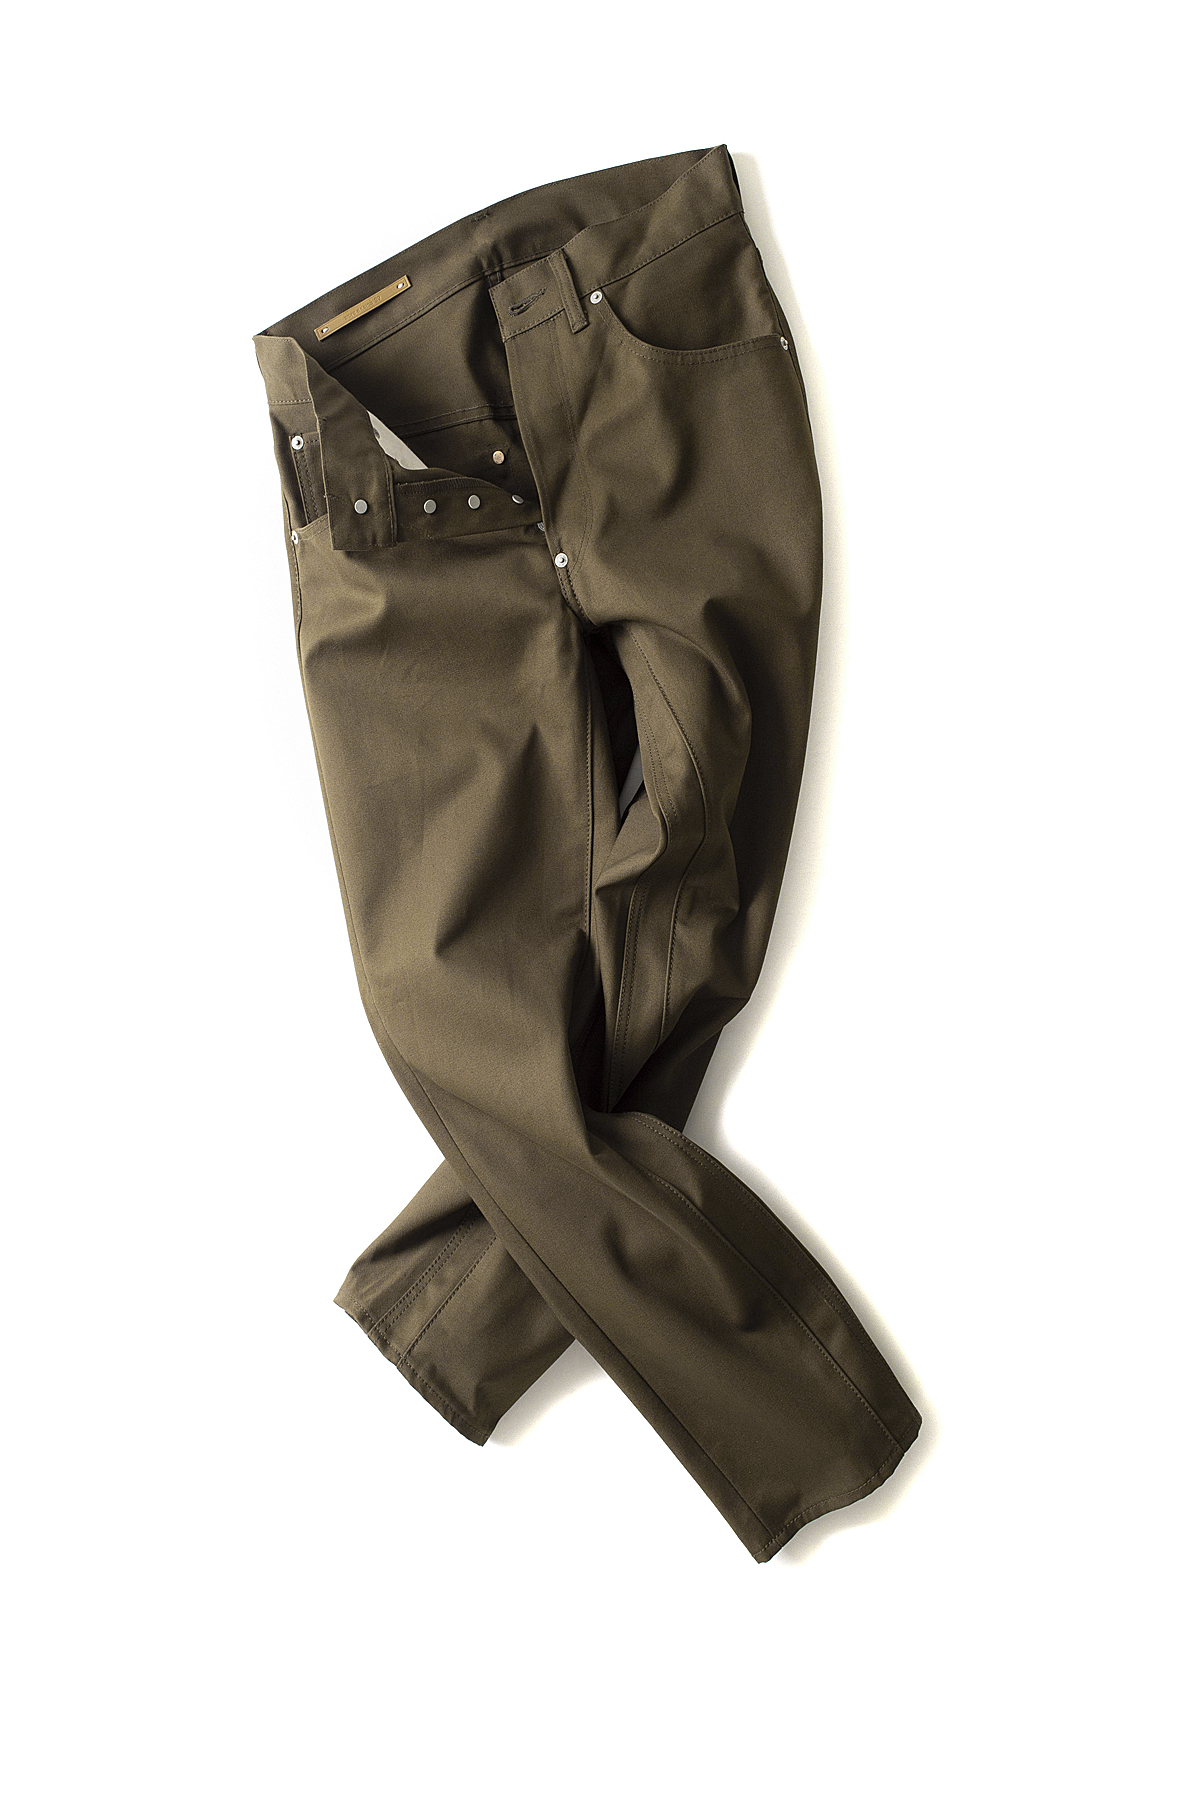 Scye Basics : Cotton Duck Hip Gusset 5Pocket Trousers (Khaki Brown)